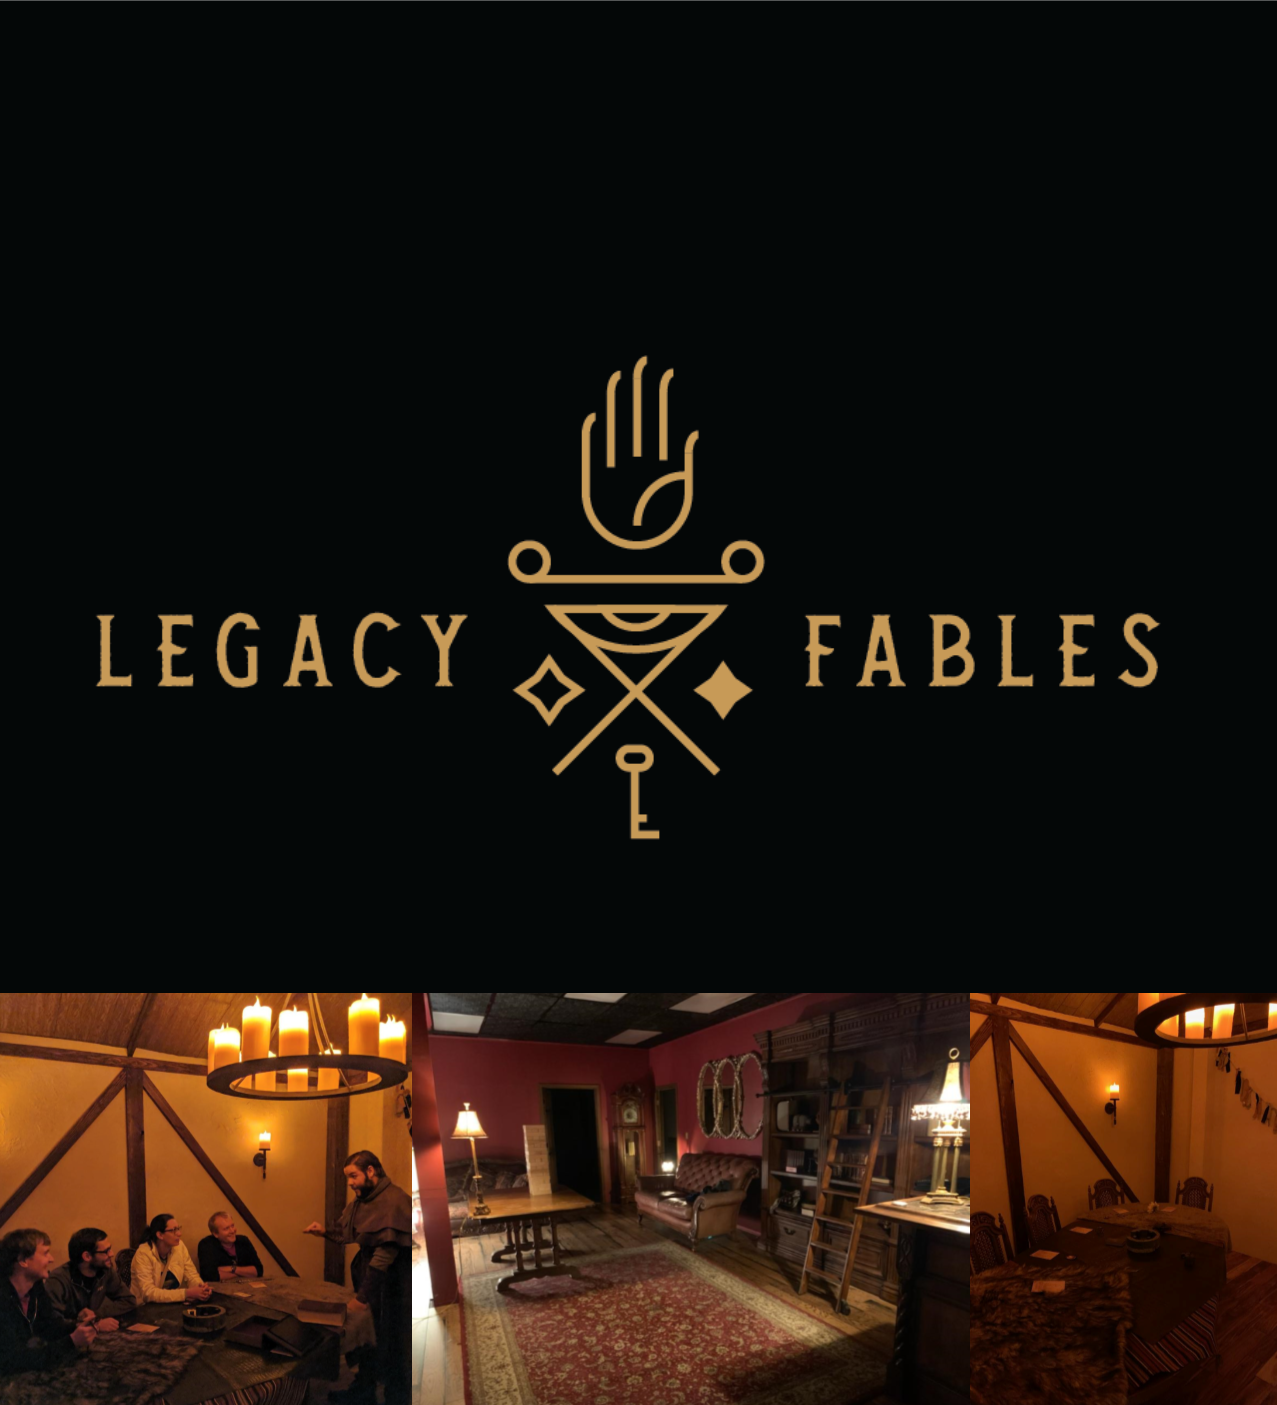 Legacy-Fables collage with logo